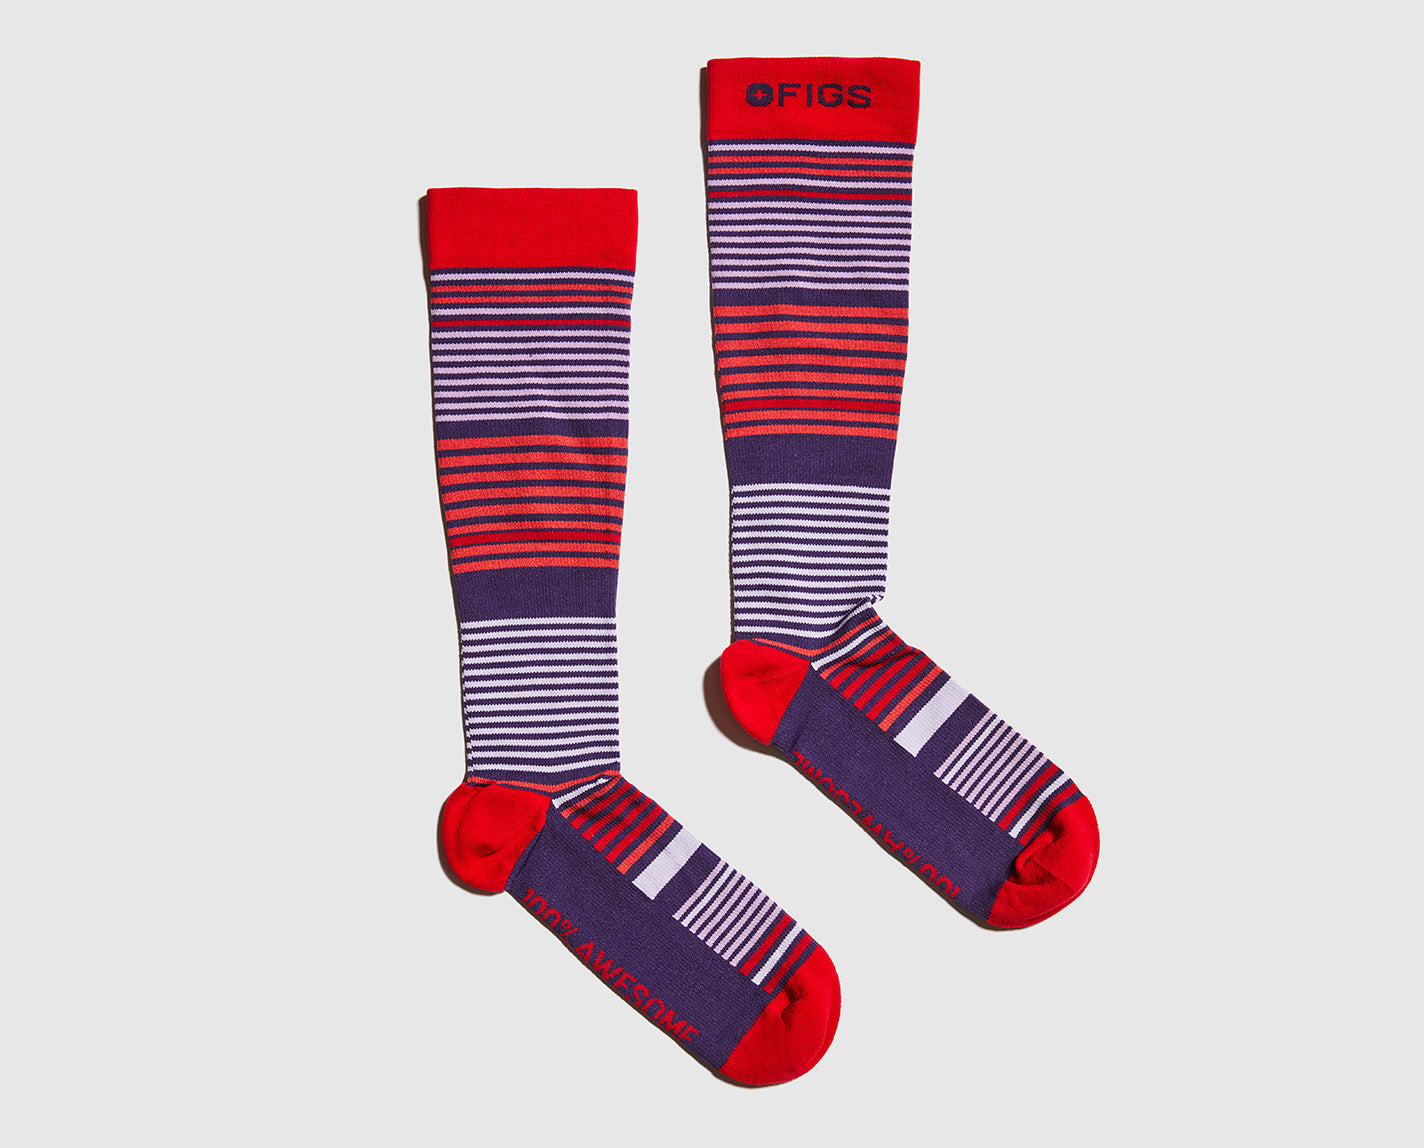 Why have one stripe when you can have so much more? Our 100% Awesome Compression Socks are ridiculously soft and help relieve tired and achy legs.